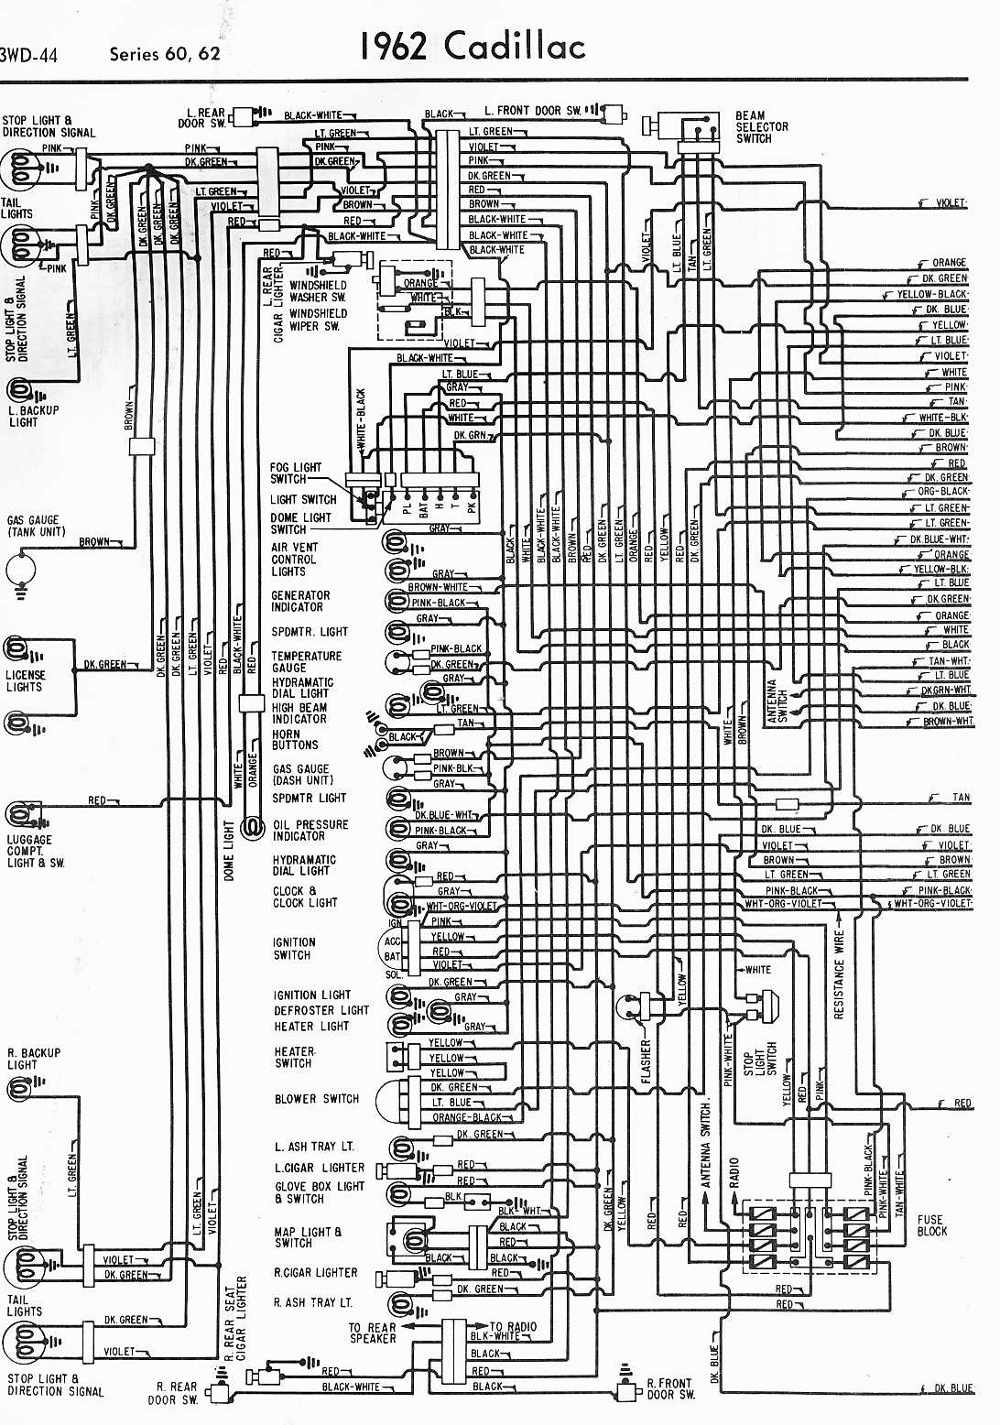 Cb450 Wiring Diagram Block Explanation 1970 Wonderful 1956 Cadillac Series 75 Ideas Best Image Wire Binvm Us 1974